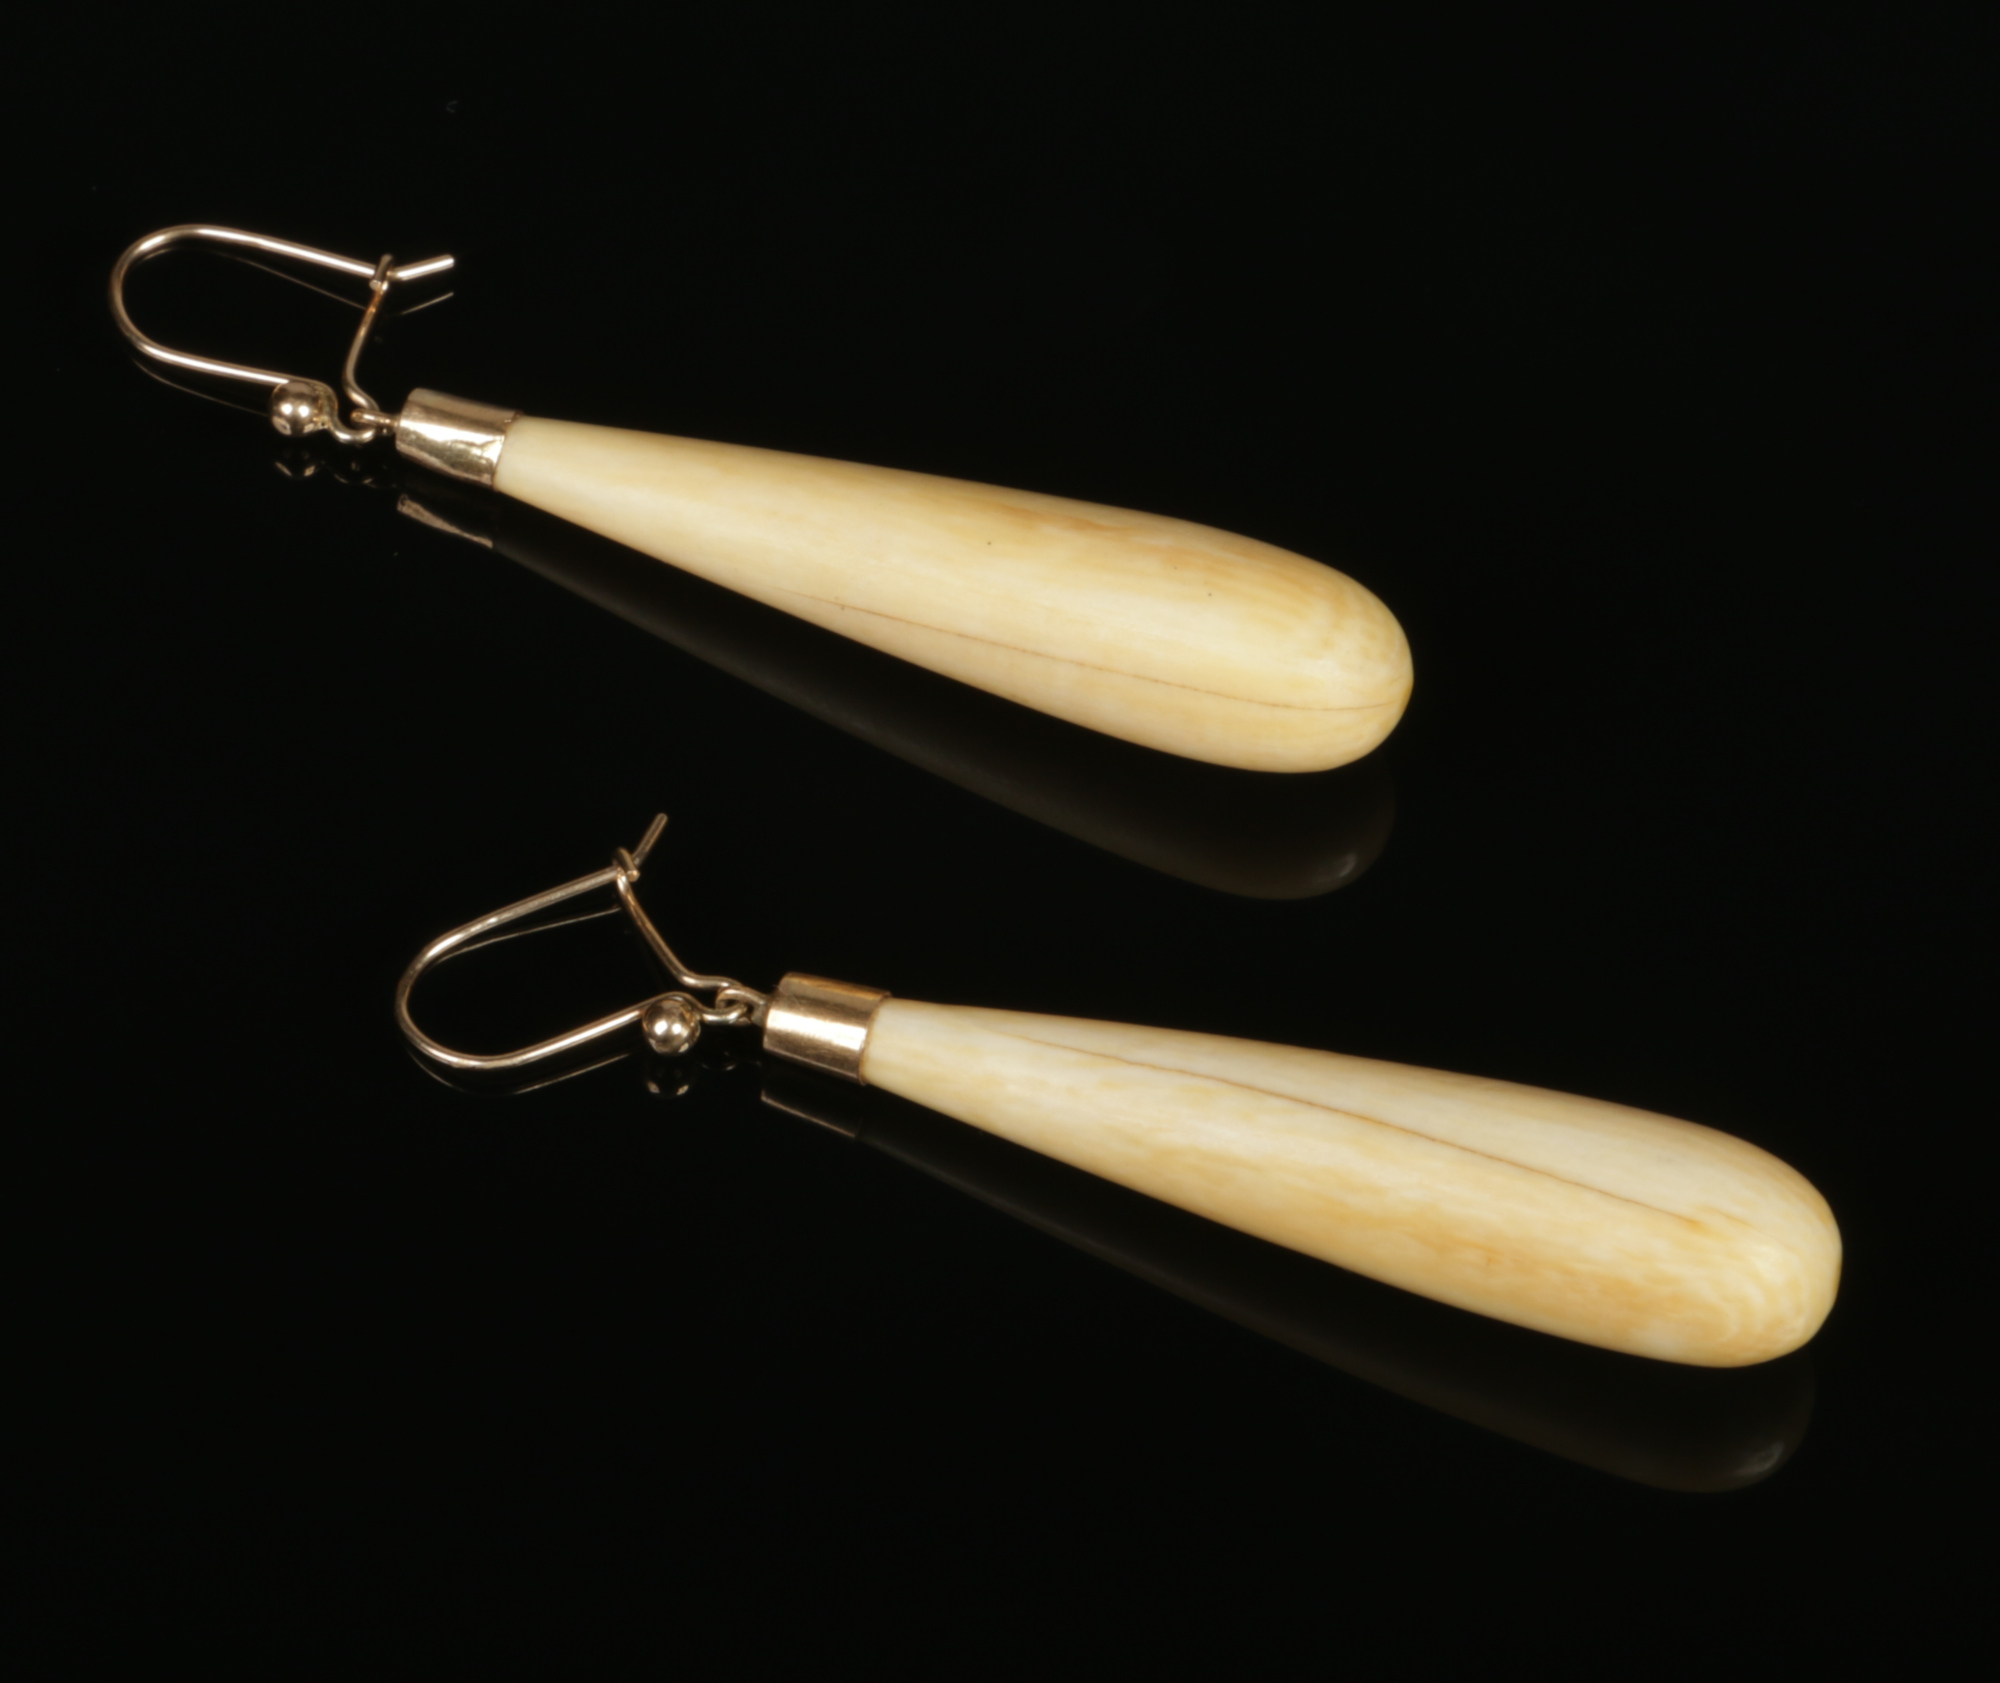 Lot 436 - A pair of early 20th century 9 carat gold mounted turned ivory drop earrings, 47mm.Condition